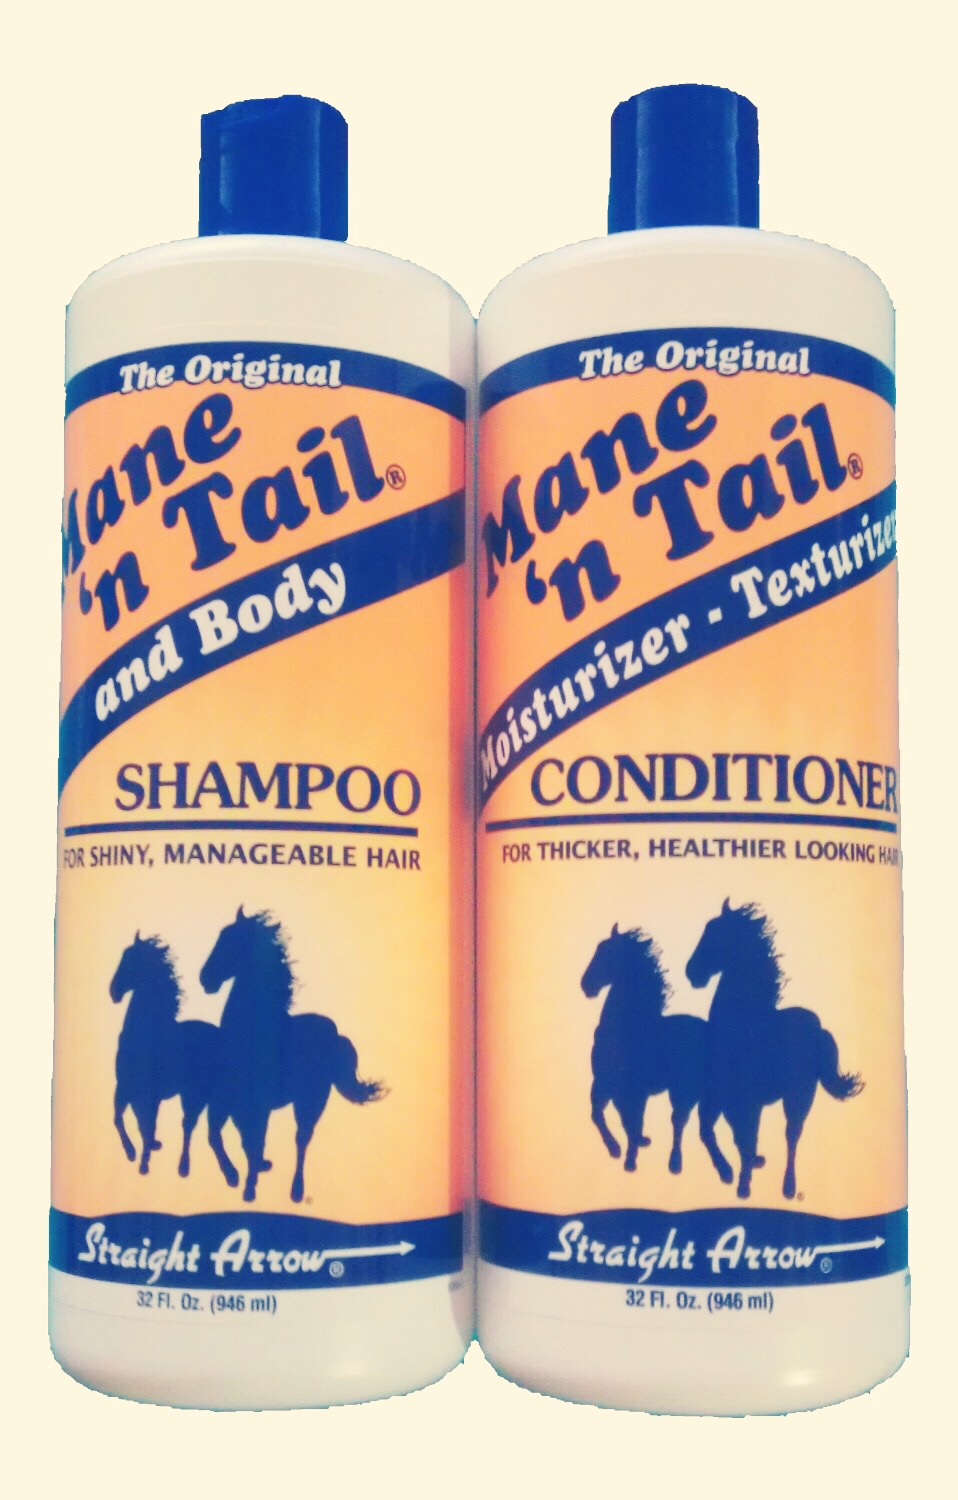 Original Mane 'n Tail Shampoo is an exclusive, high-lathering horse shampoo containing cleansing agents fortified with moisturizers and emollients. This